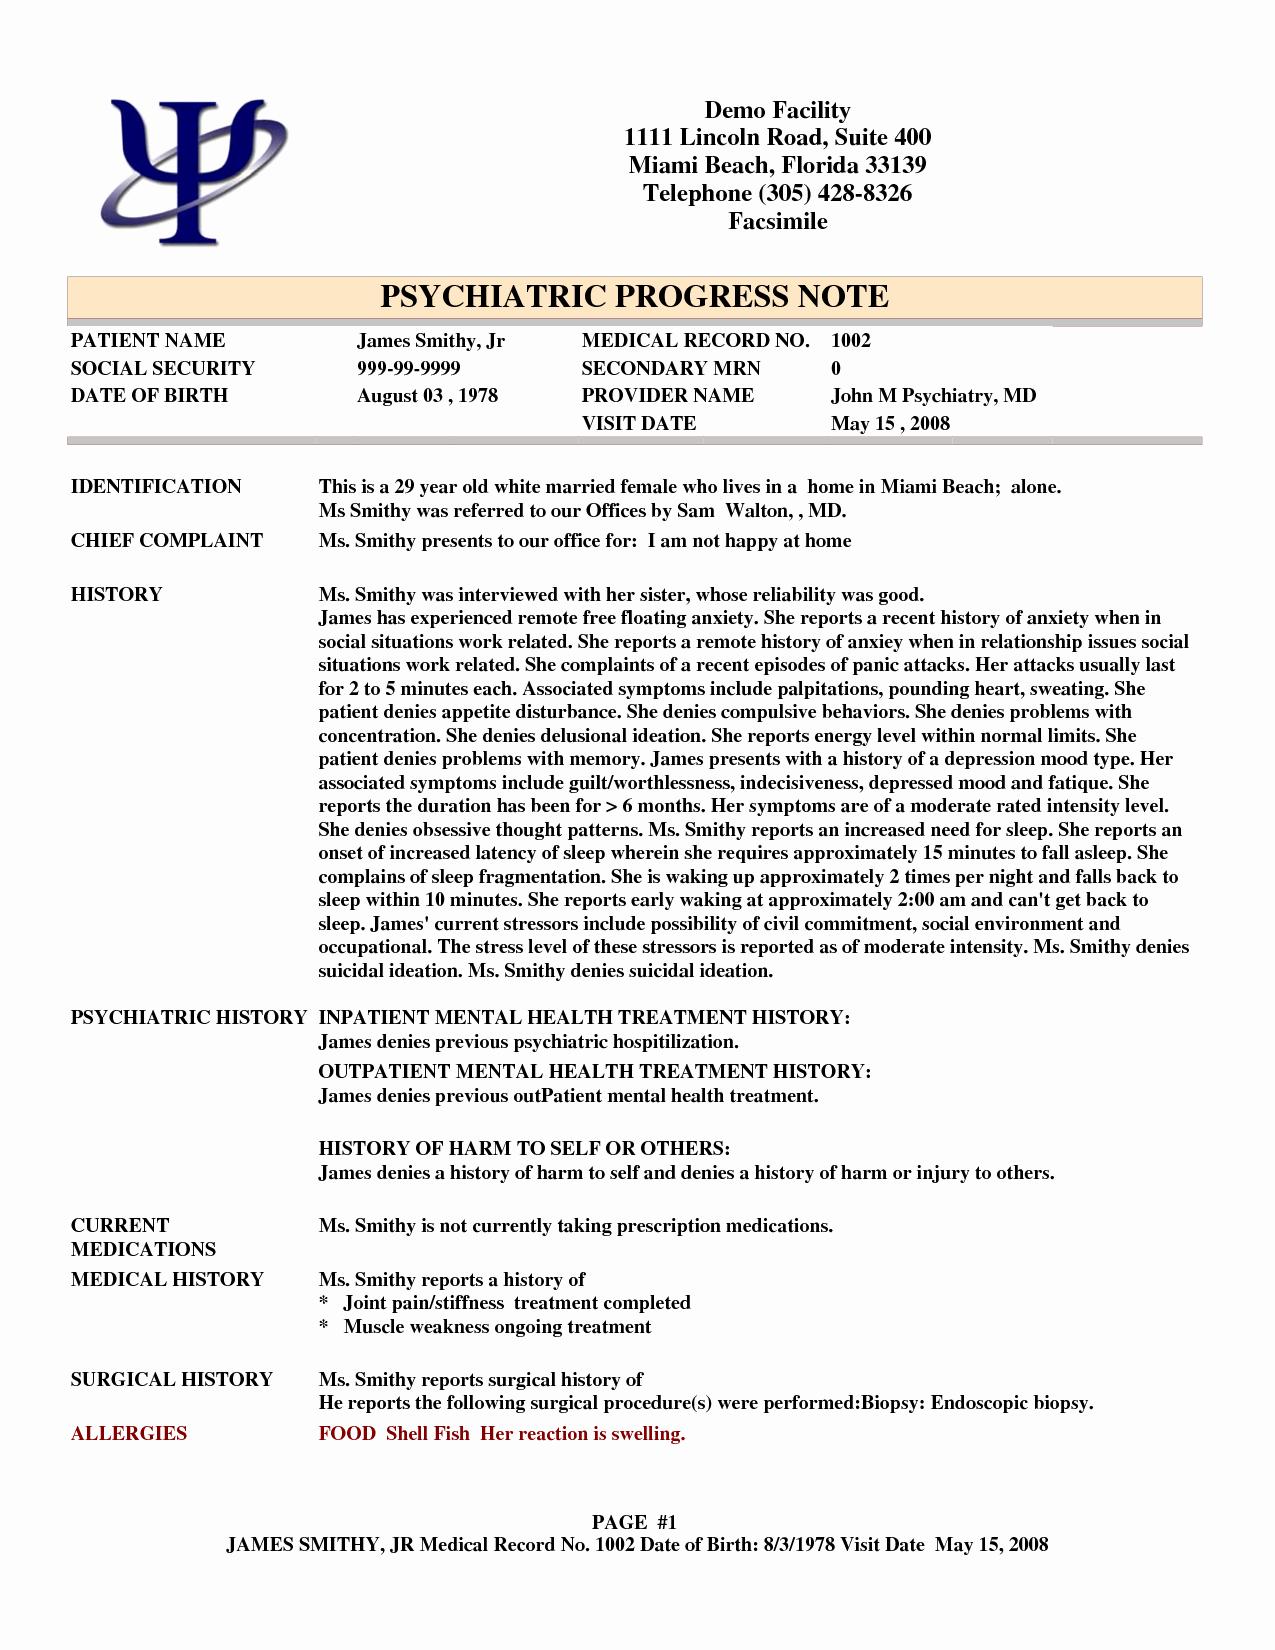 Psychiatric soap Note Template Best Of Psychotherapy Progress Notes Template Google Search